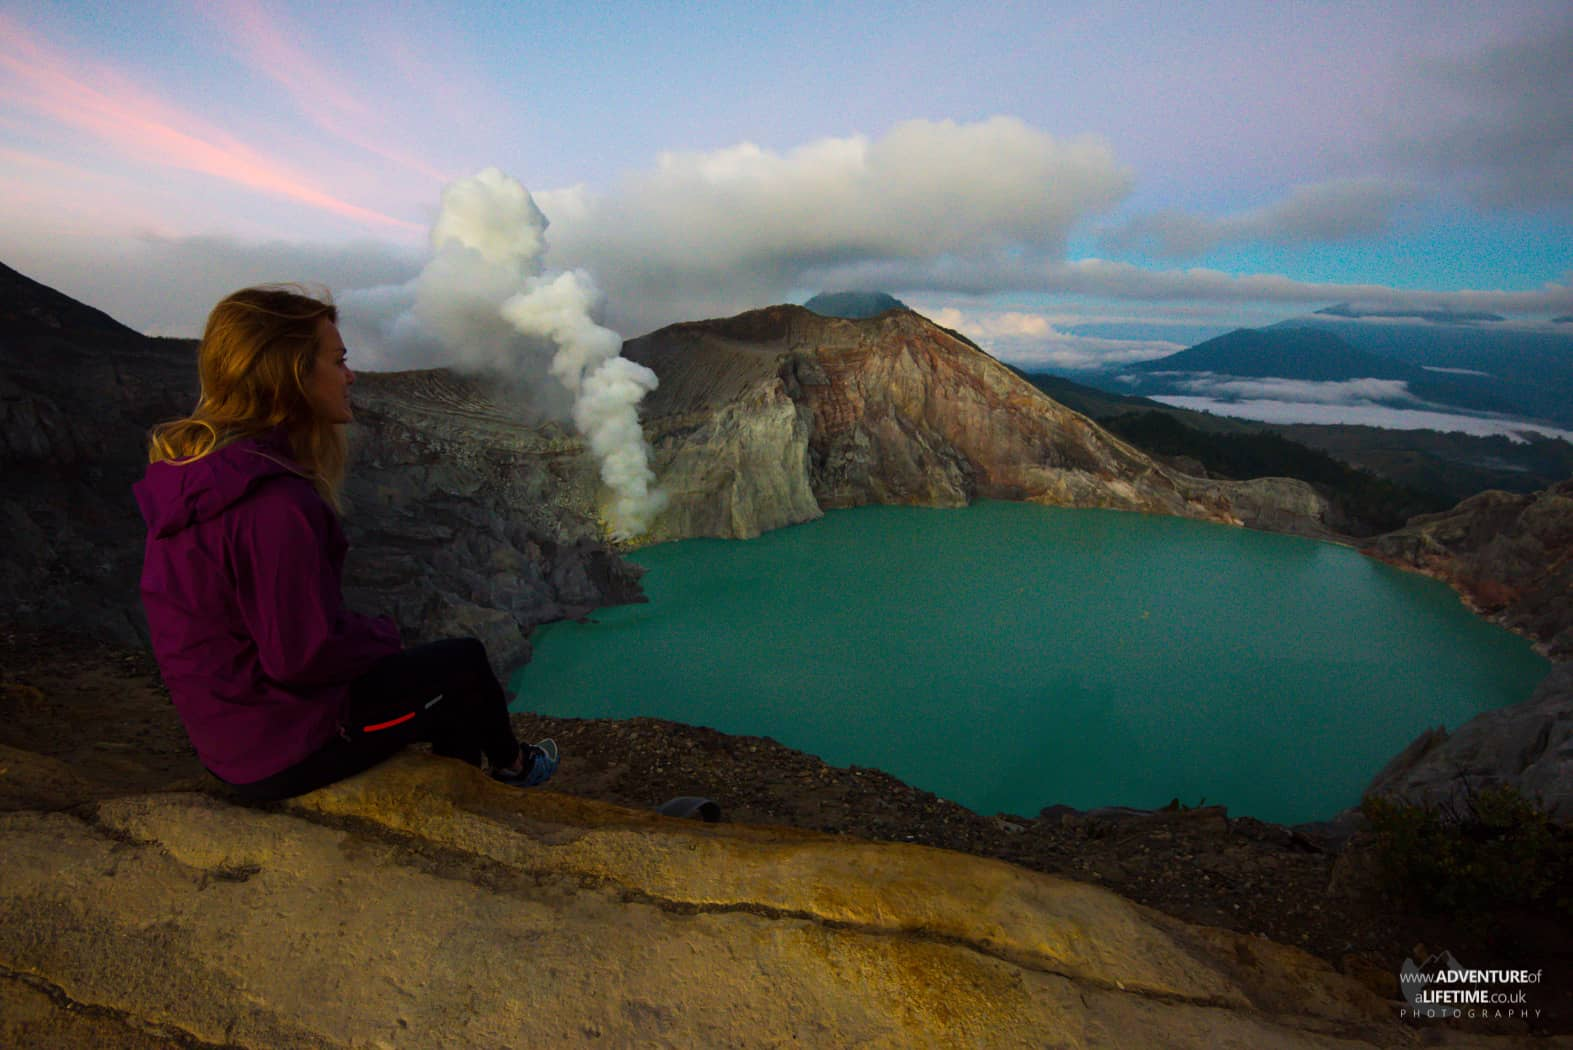 Dora sits on the crater of Ijen volcano looking down at the blue lake